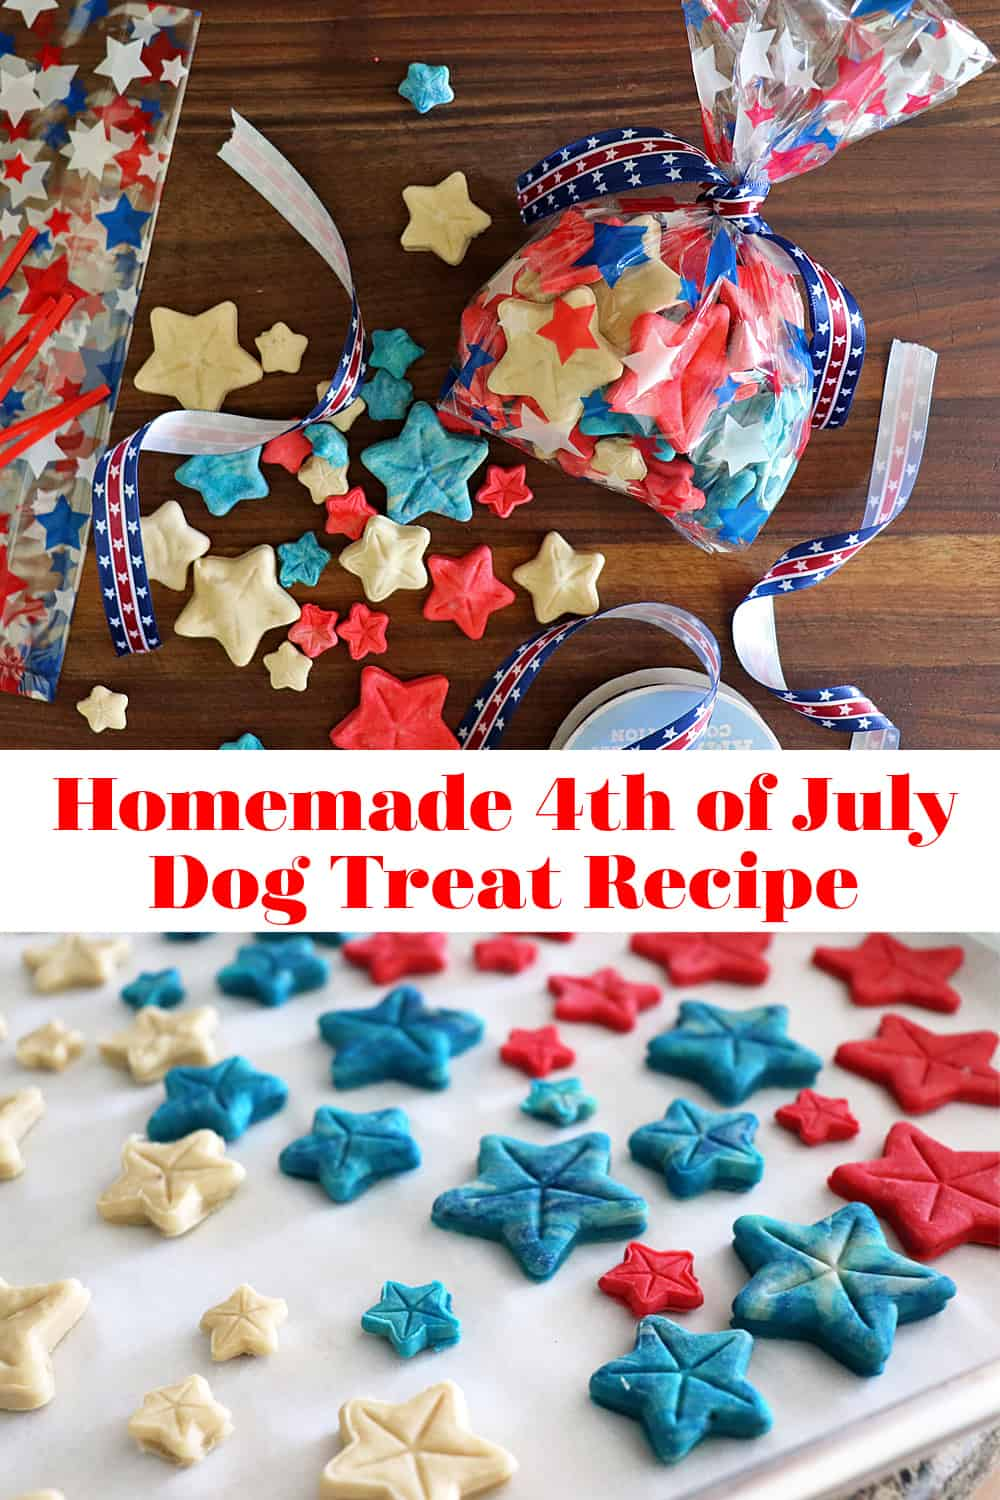 PIN for Homemade 4th of July Dog Treat Recipe